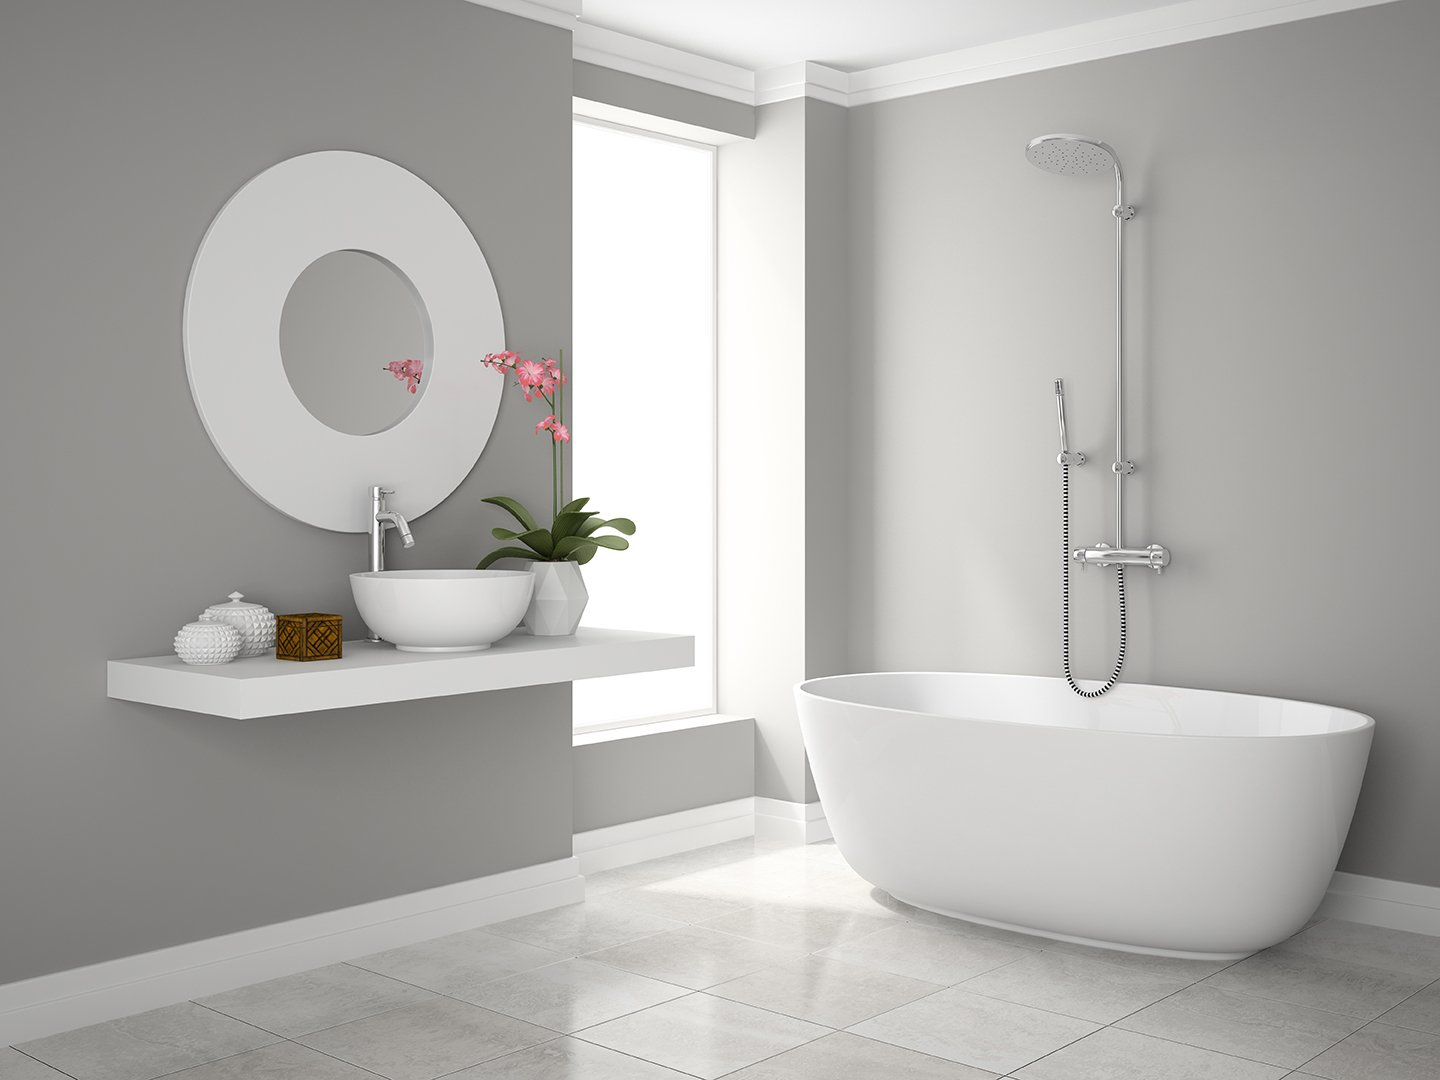 Hastings bathrooms ltd bathroom showroom hastings for Bathroom design ltd